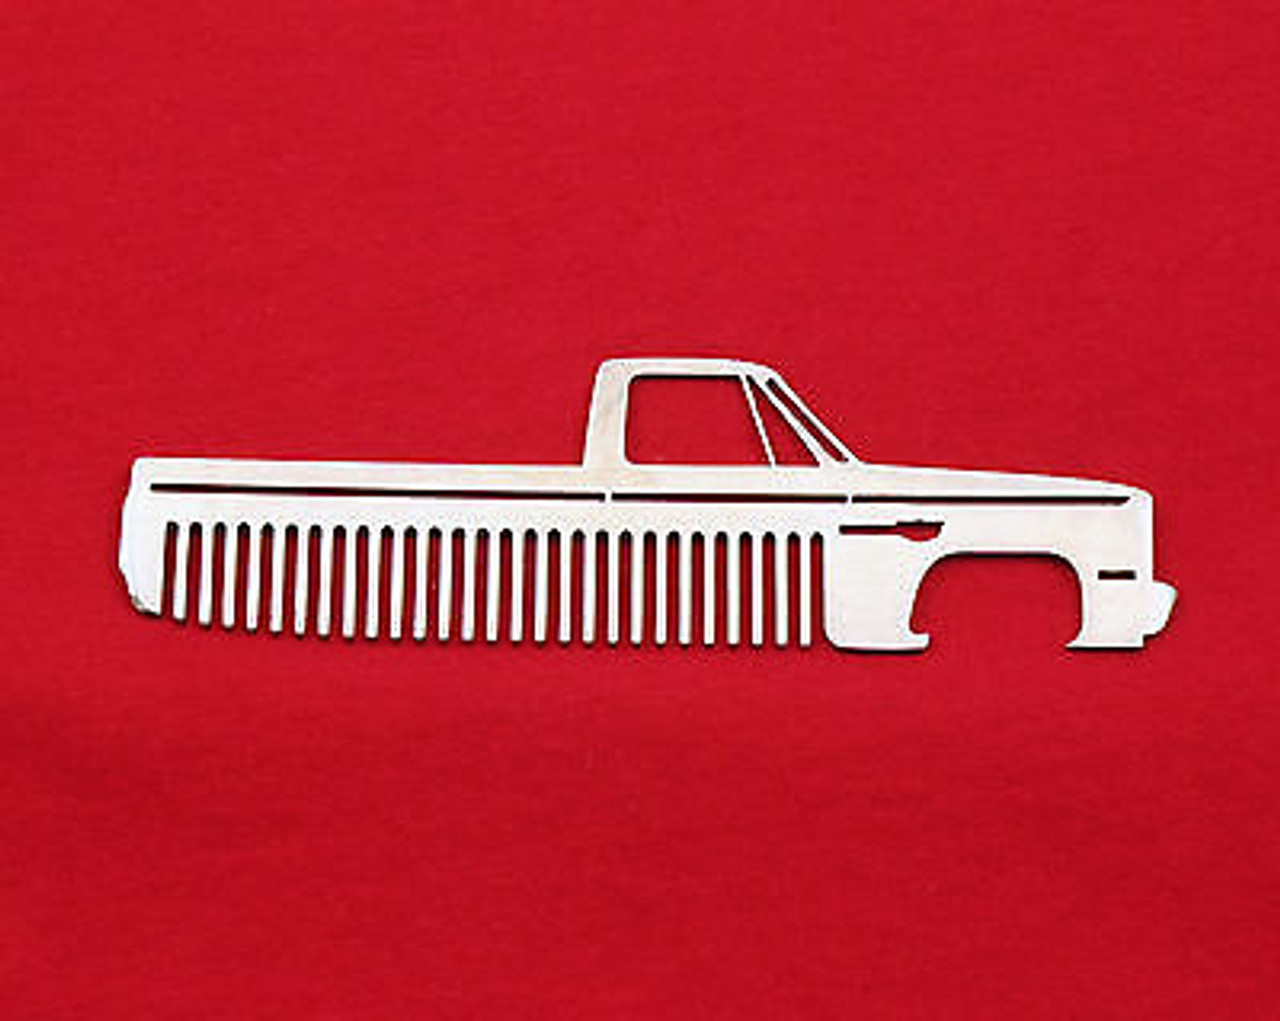 medium resolution of 73 87 chevy truck brushed stainless steel metal trim beard hair mustache comb